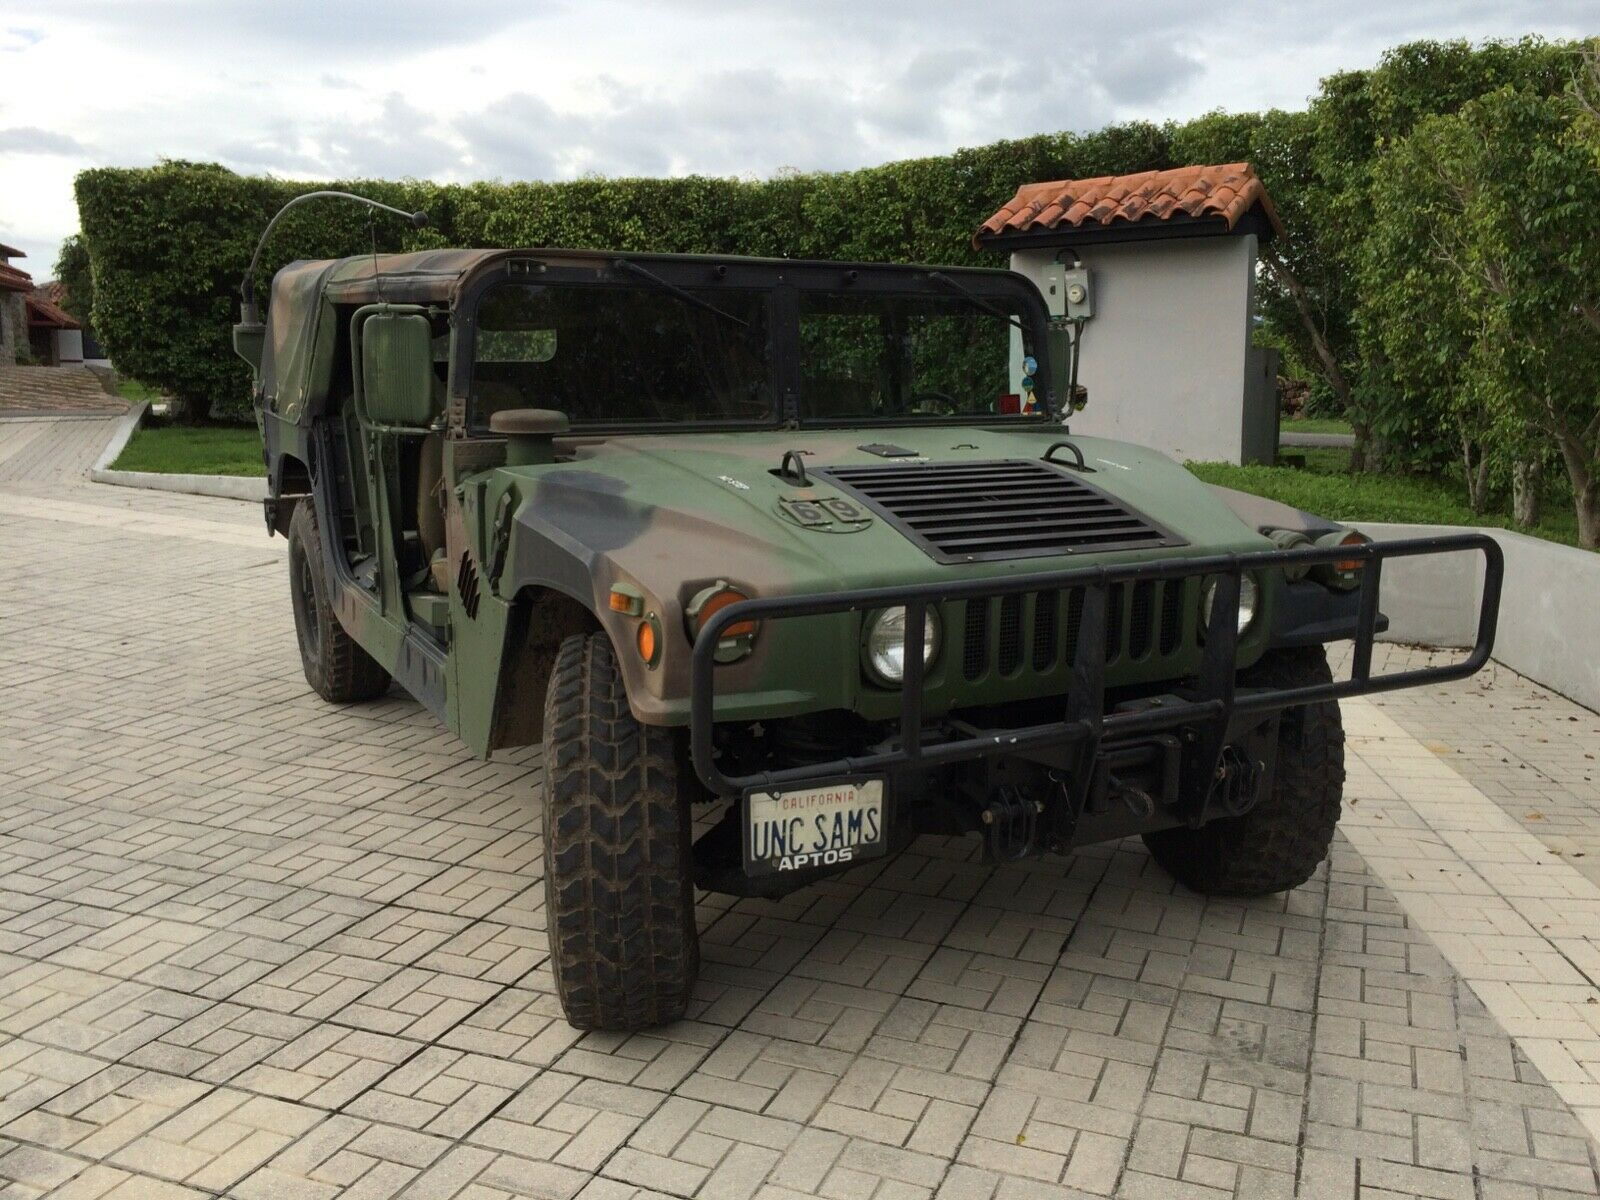 Completely Restored 1987 AM General Humvee M988 for sale